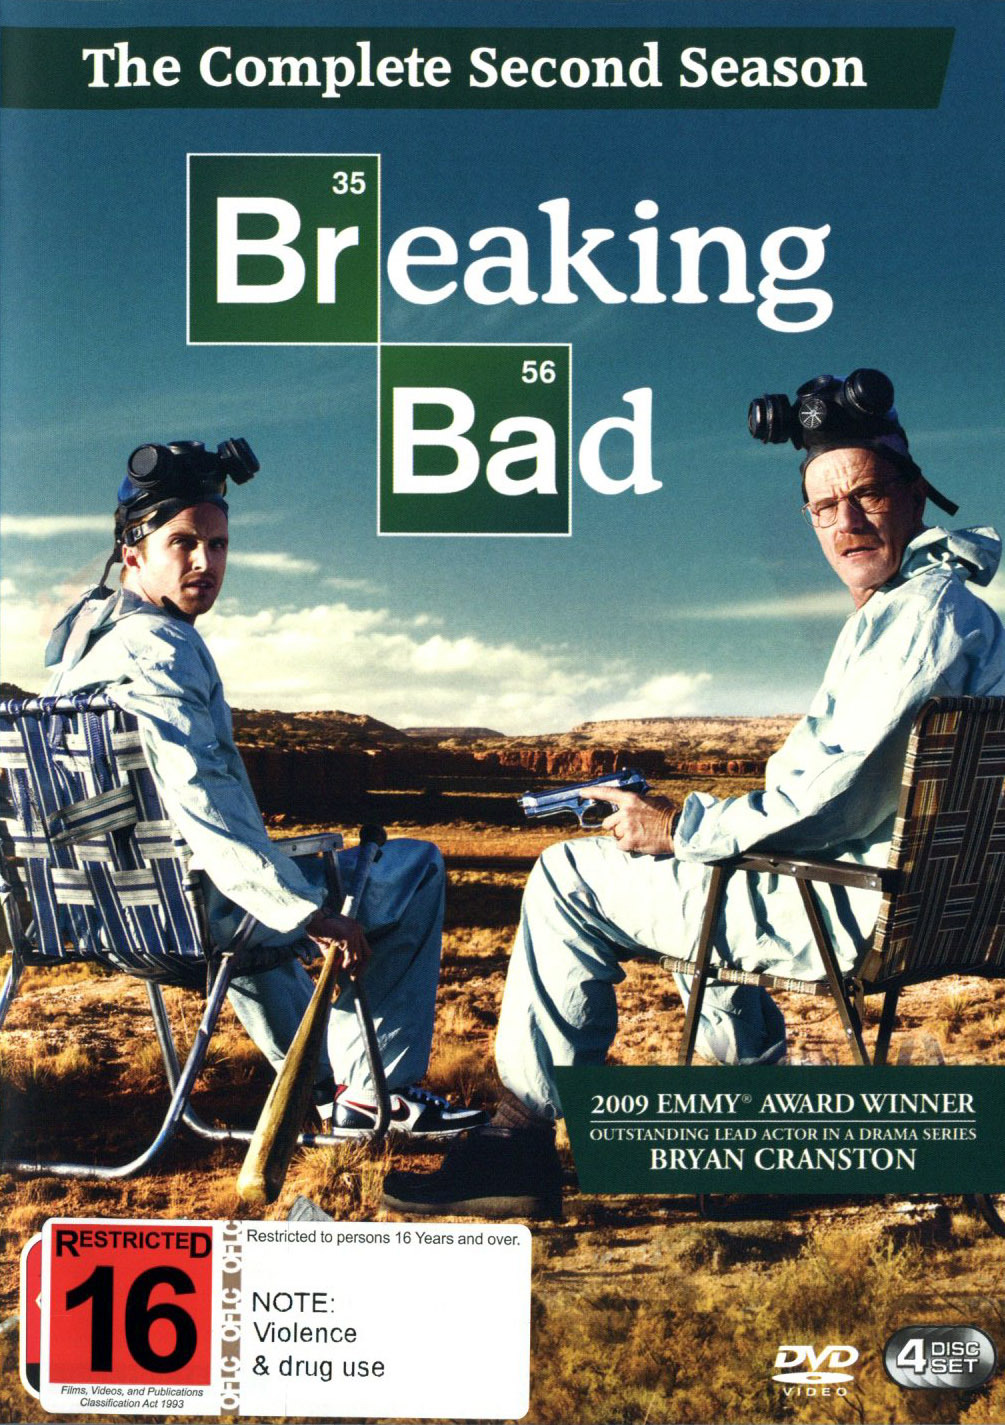 Breaking Bad - The Complete Second Season on DVD image